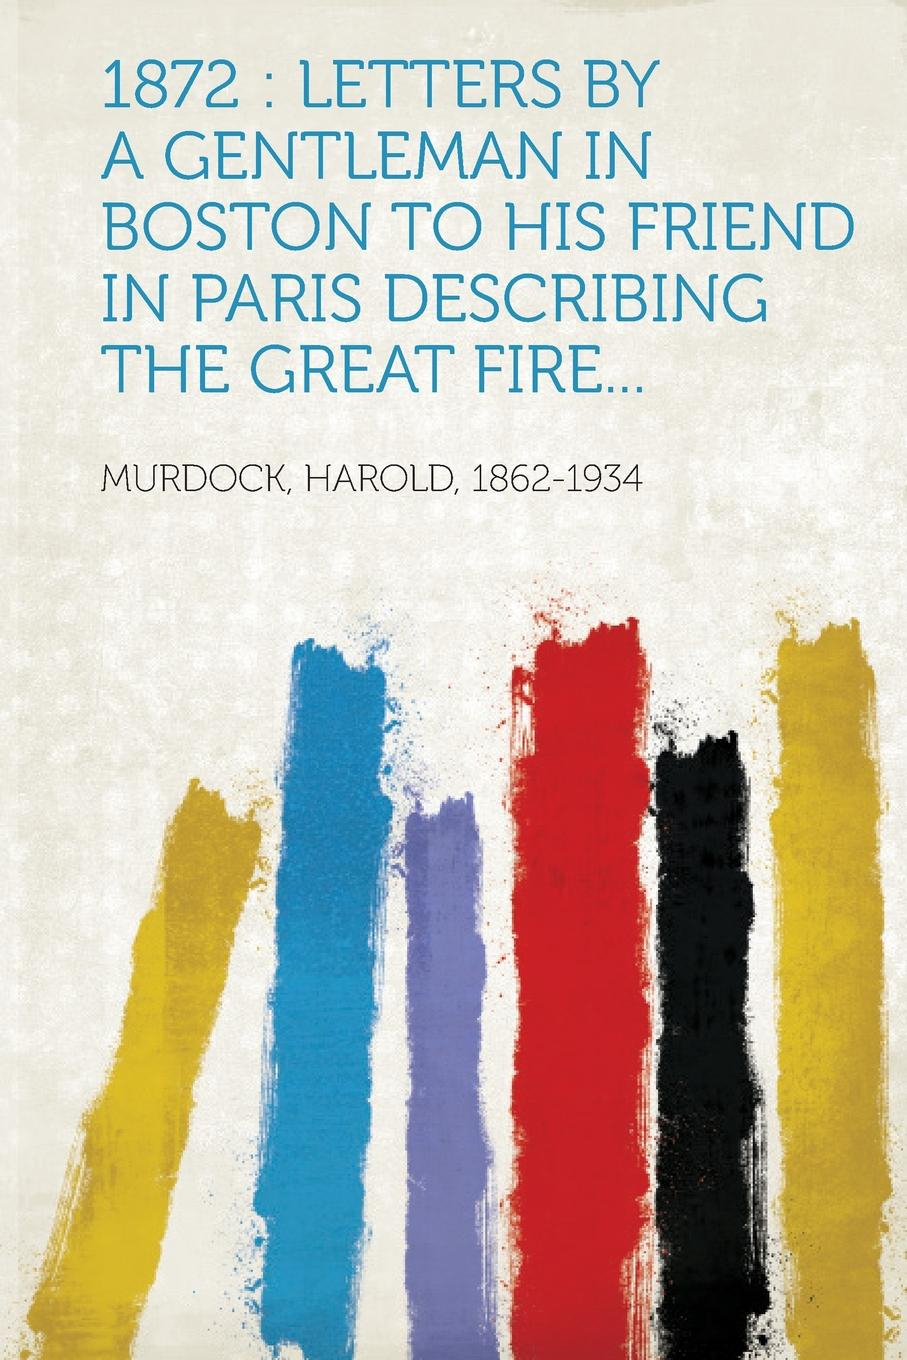 1872. Letters by a Gentleman in Boston to His Friend in Paris Describing the Great Fire...